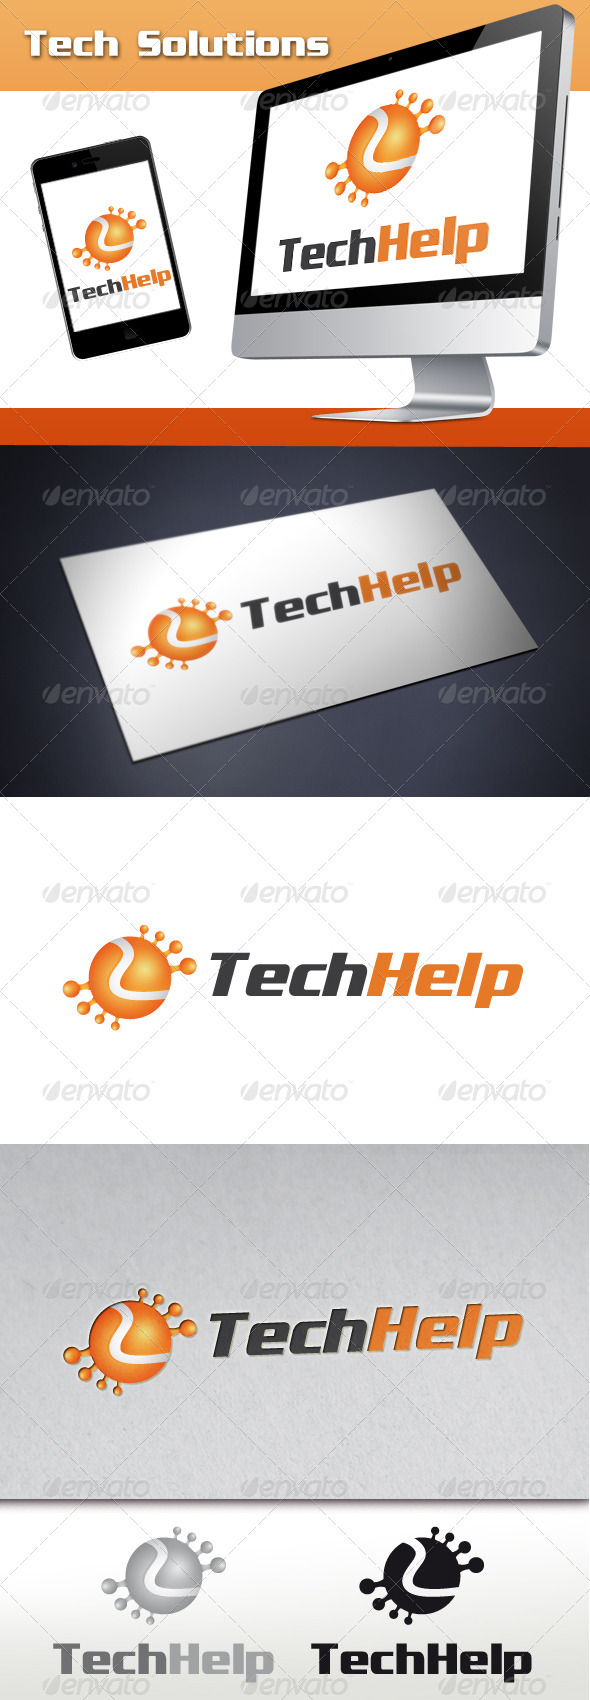 Tech Solutions Logo